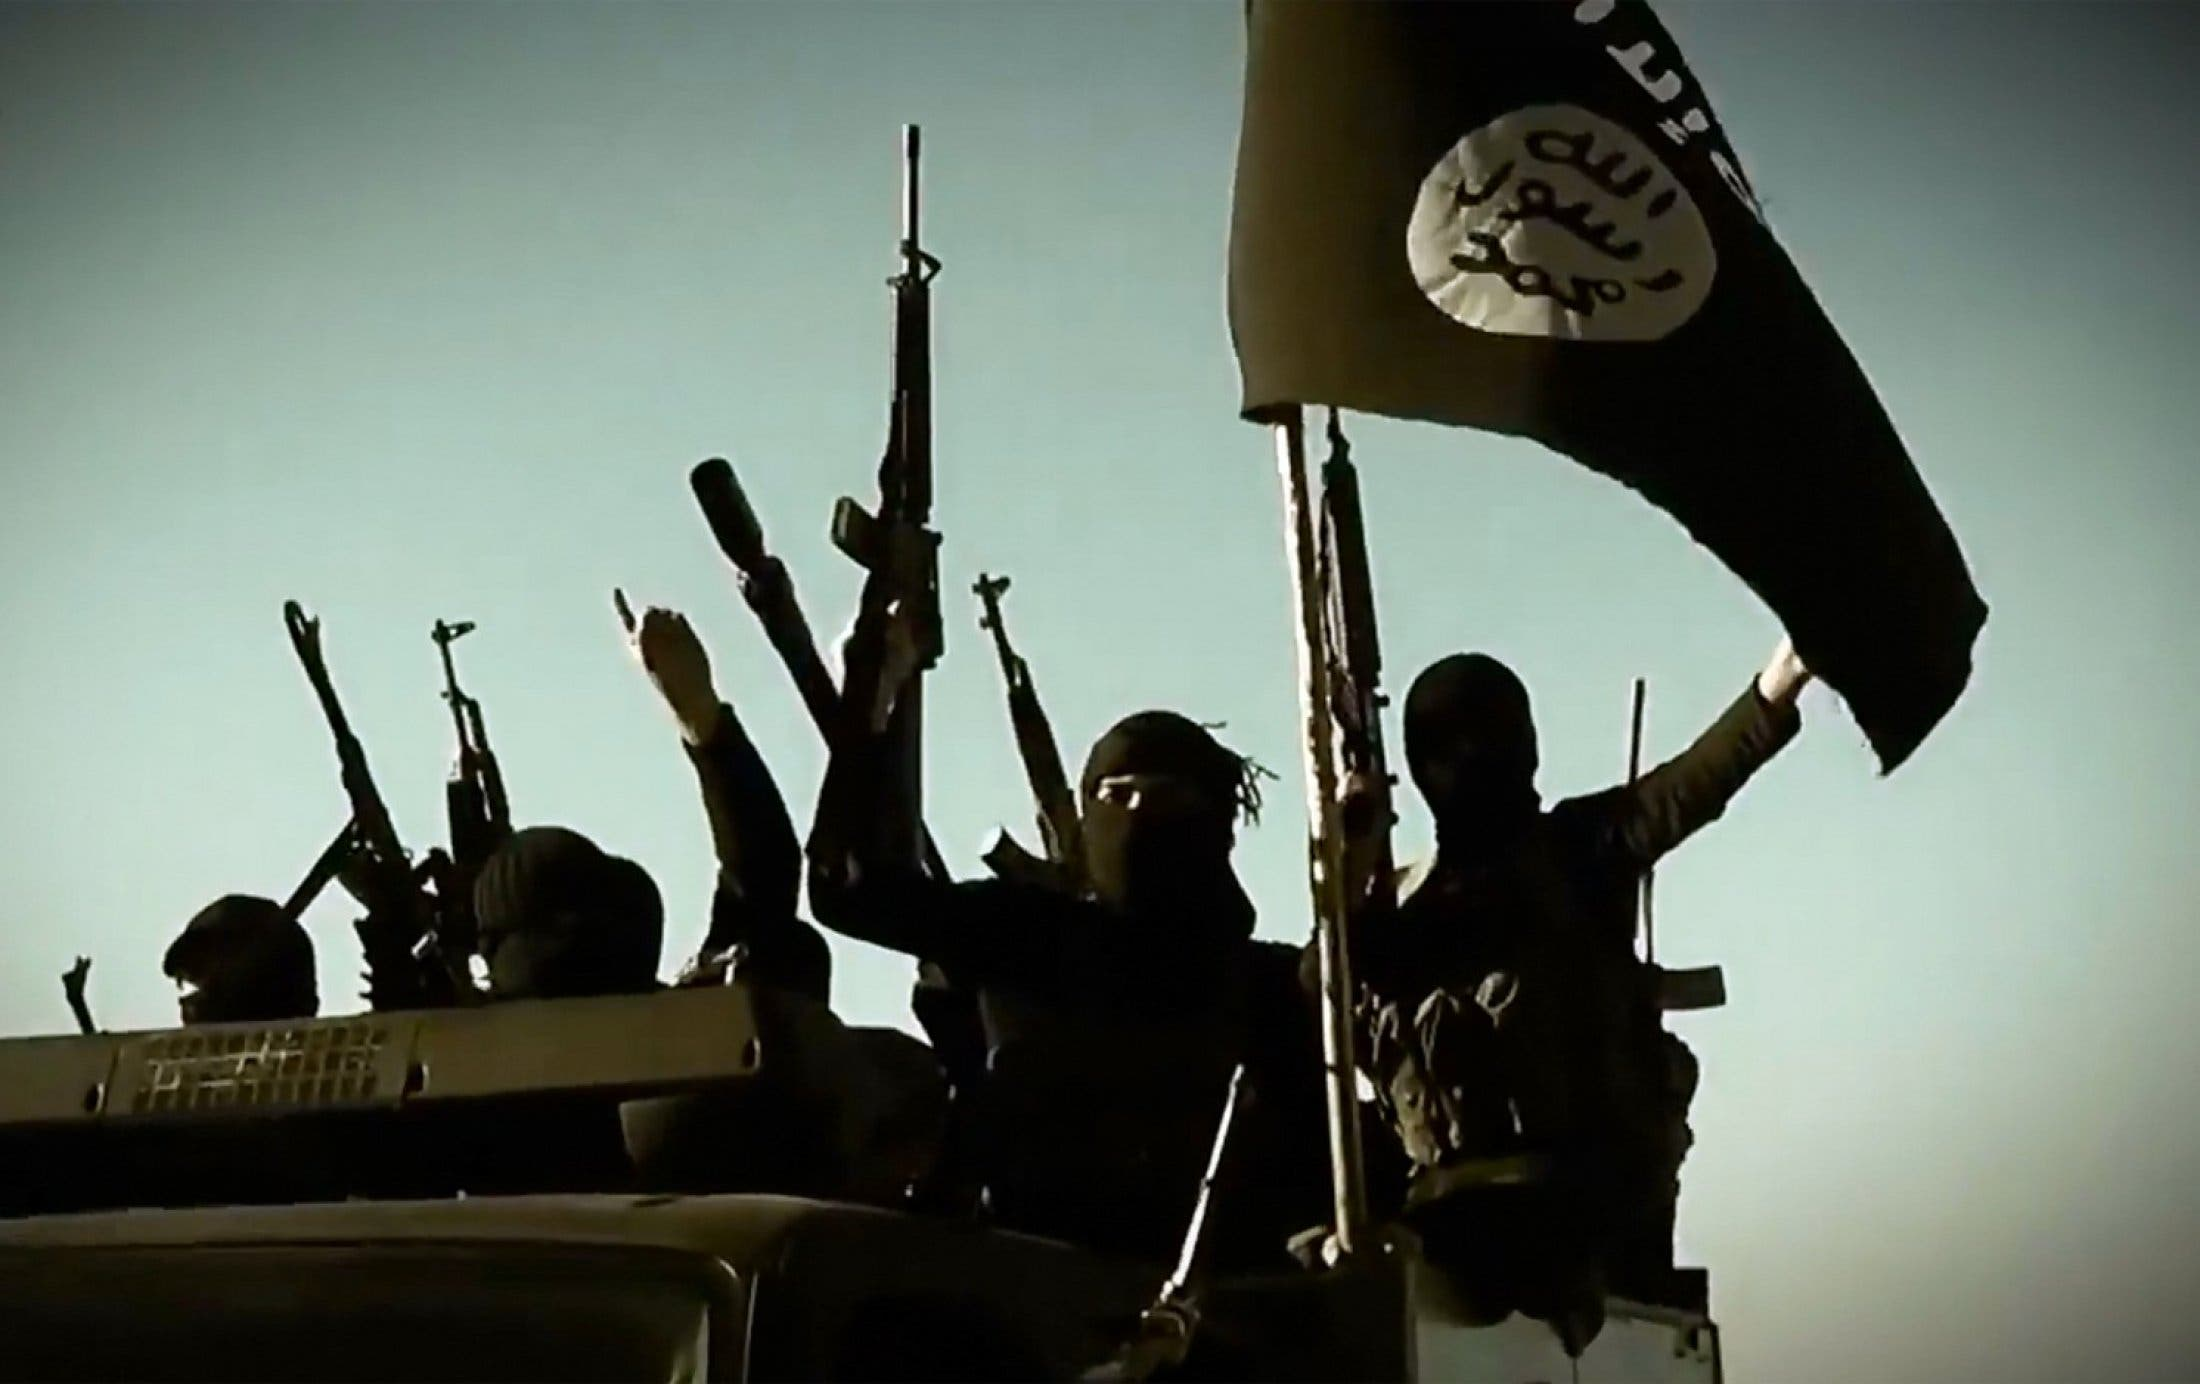 According to the Dutch secret services, 200 people from the Netherlands including 50 women have joined ISIS in Syria and Iraq. (File photo: AFP)